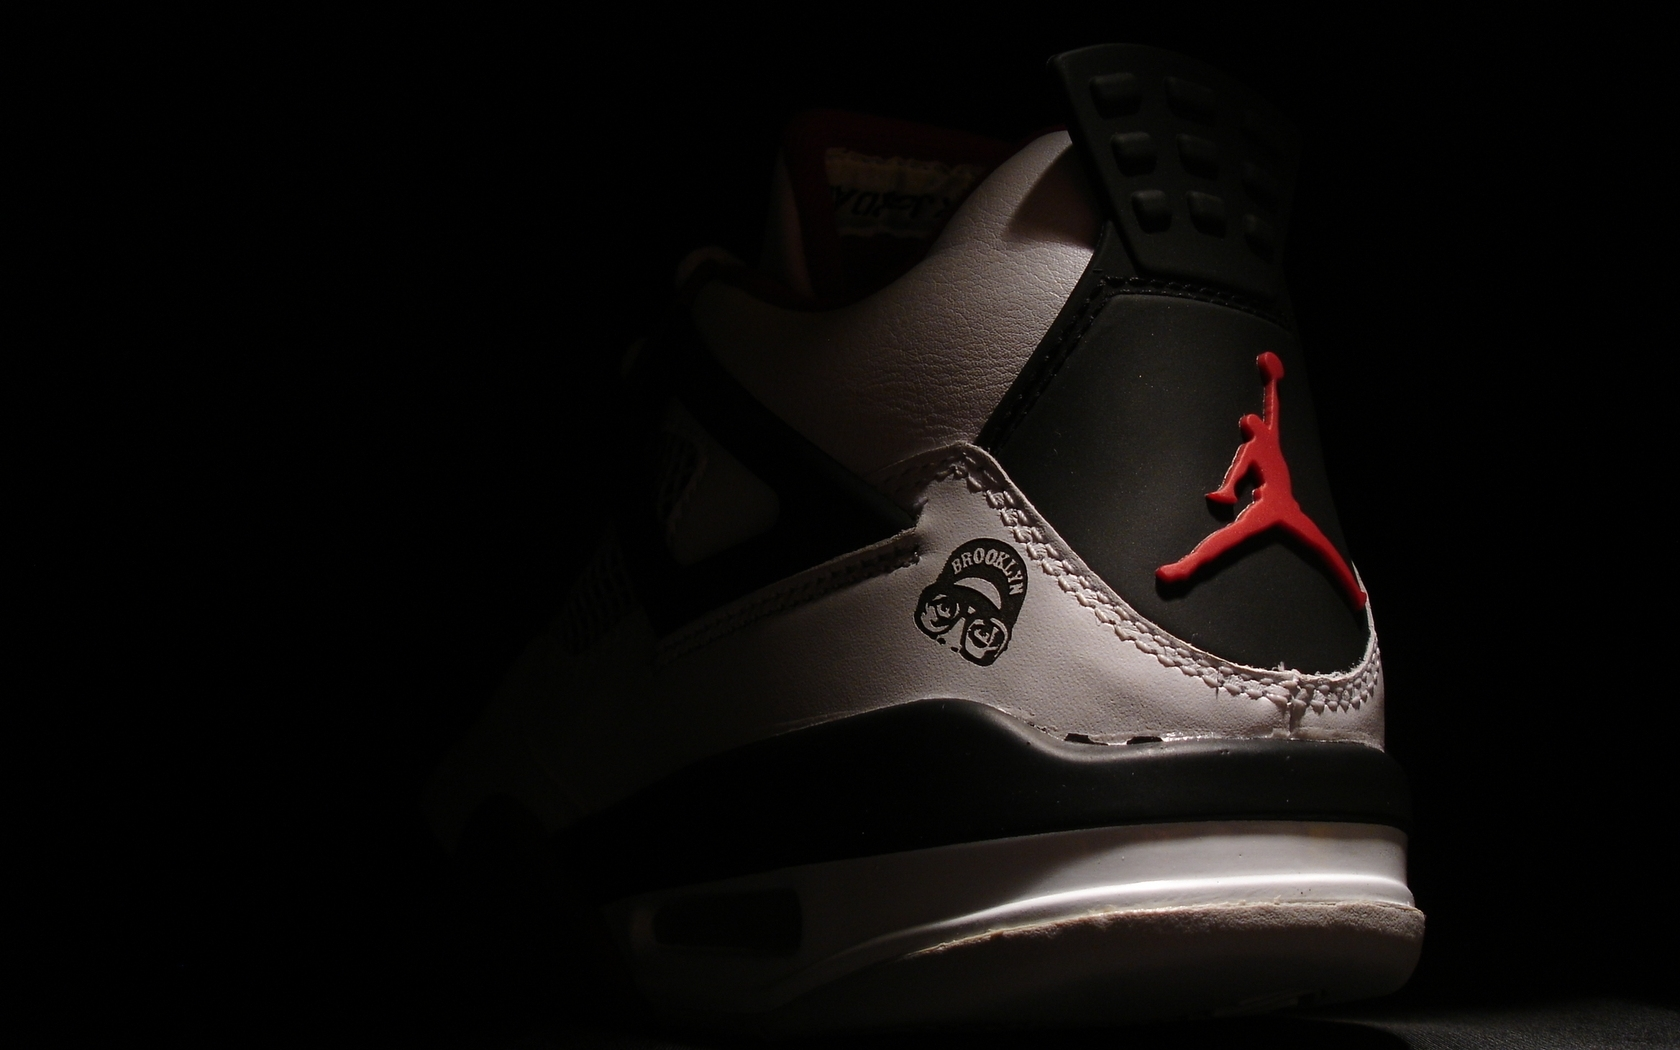 Original Jordan Mars Blackmon Air Shoes Desktop Wallpaper